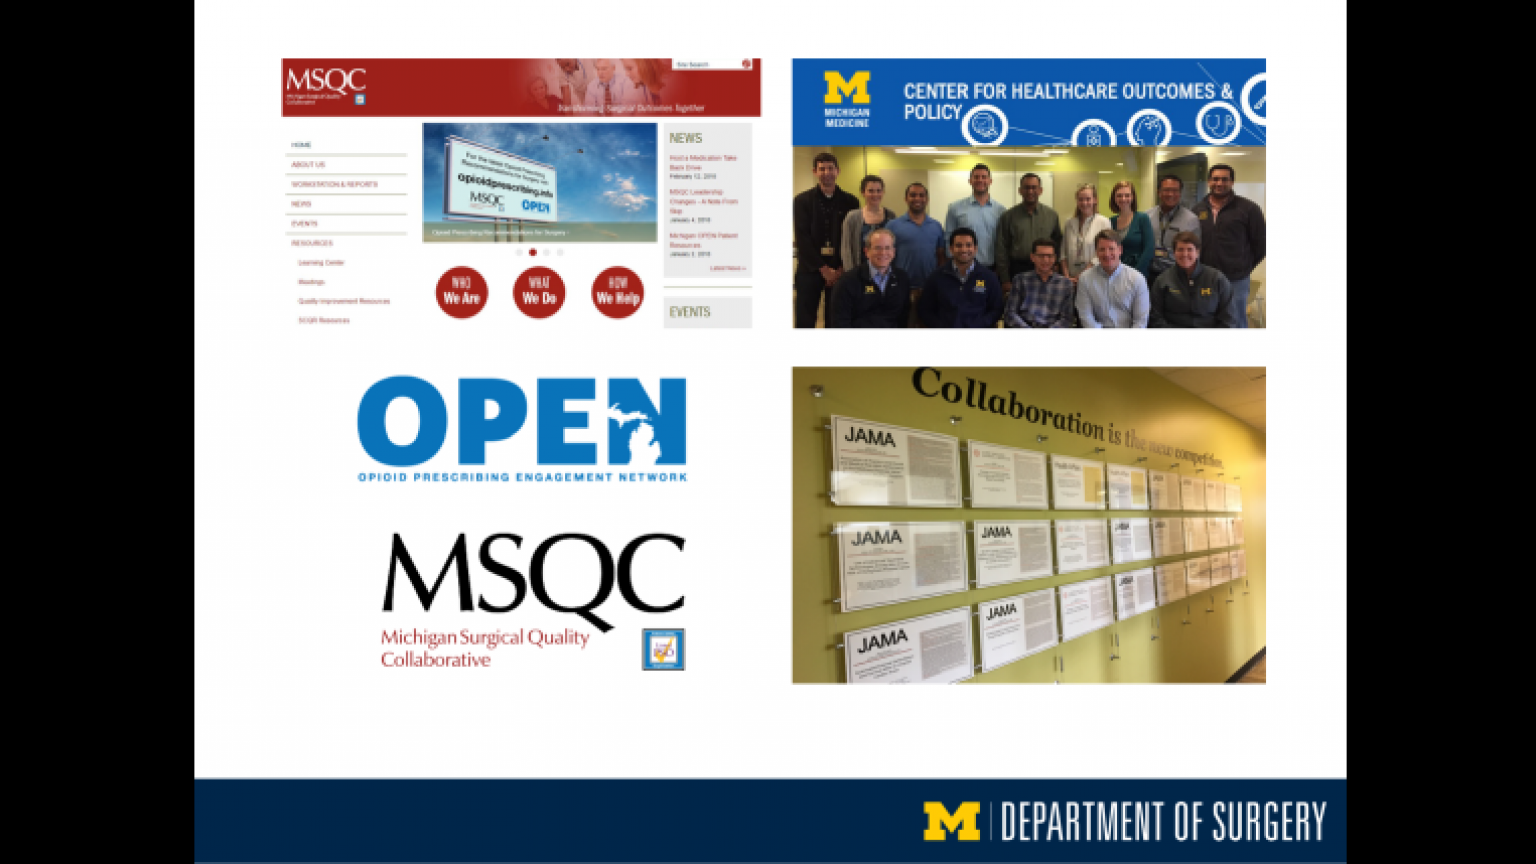 """Collaborations include Michigan Surgical Quality Collaborative, Michigan Opioid Prescribing Engagement Network, Center for Healthcare Outcomes and Policy - fifteenth slide of """"This Is What We Stand For"""" presentation"""